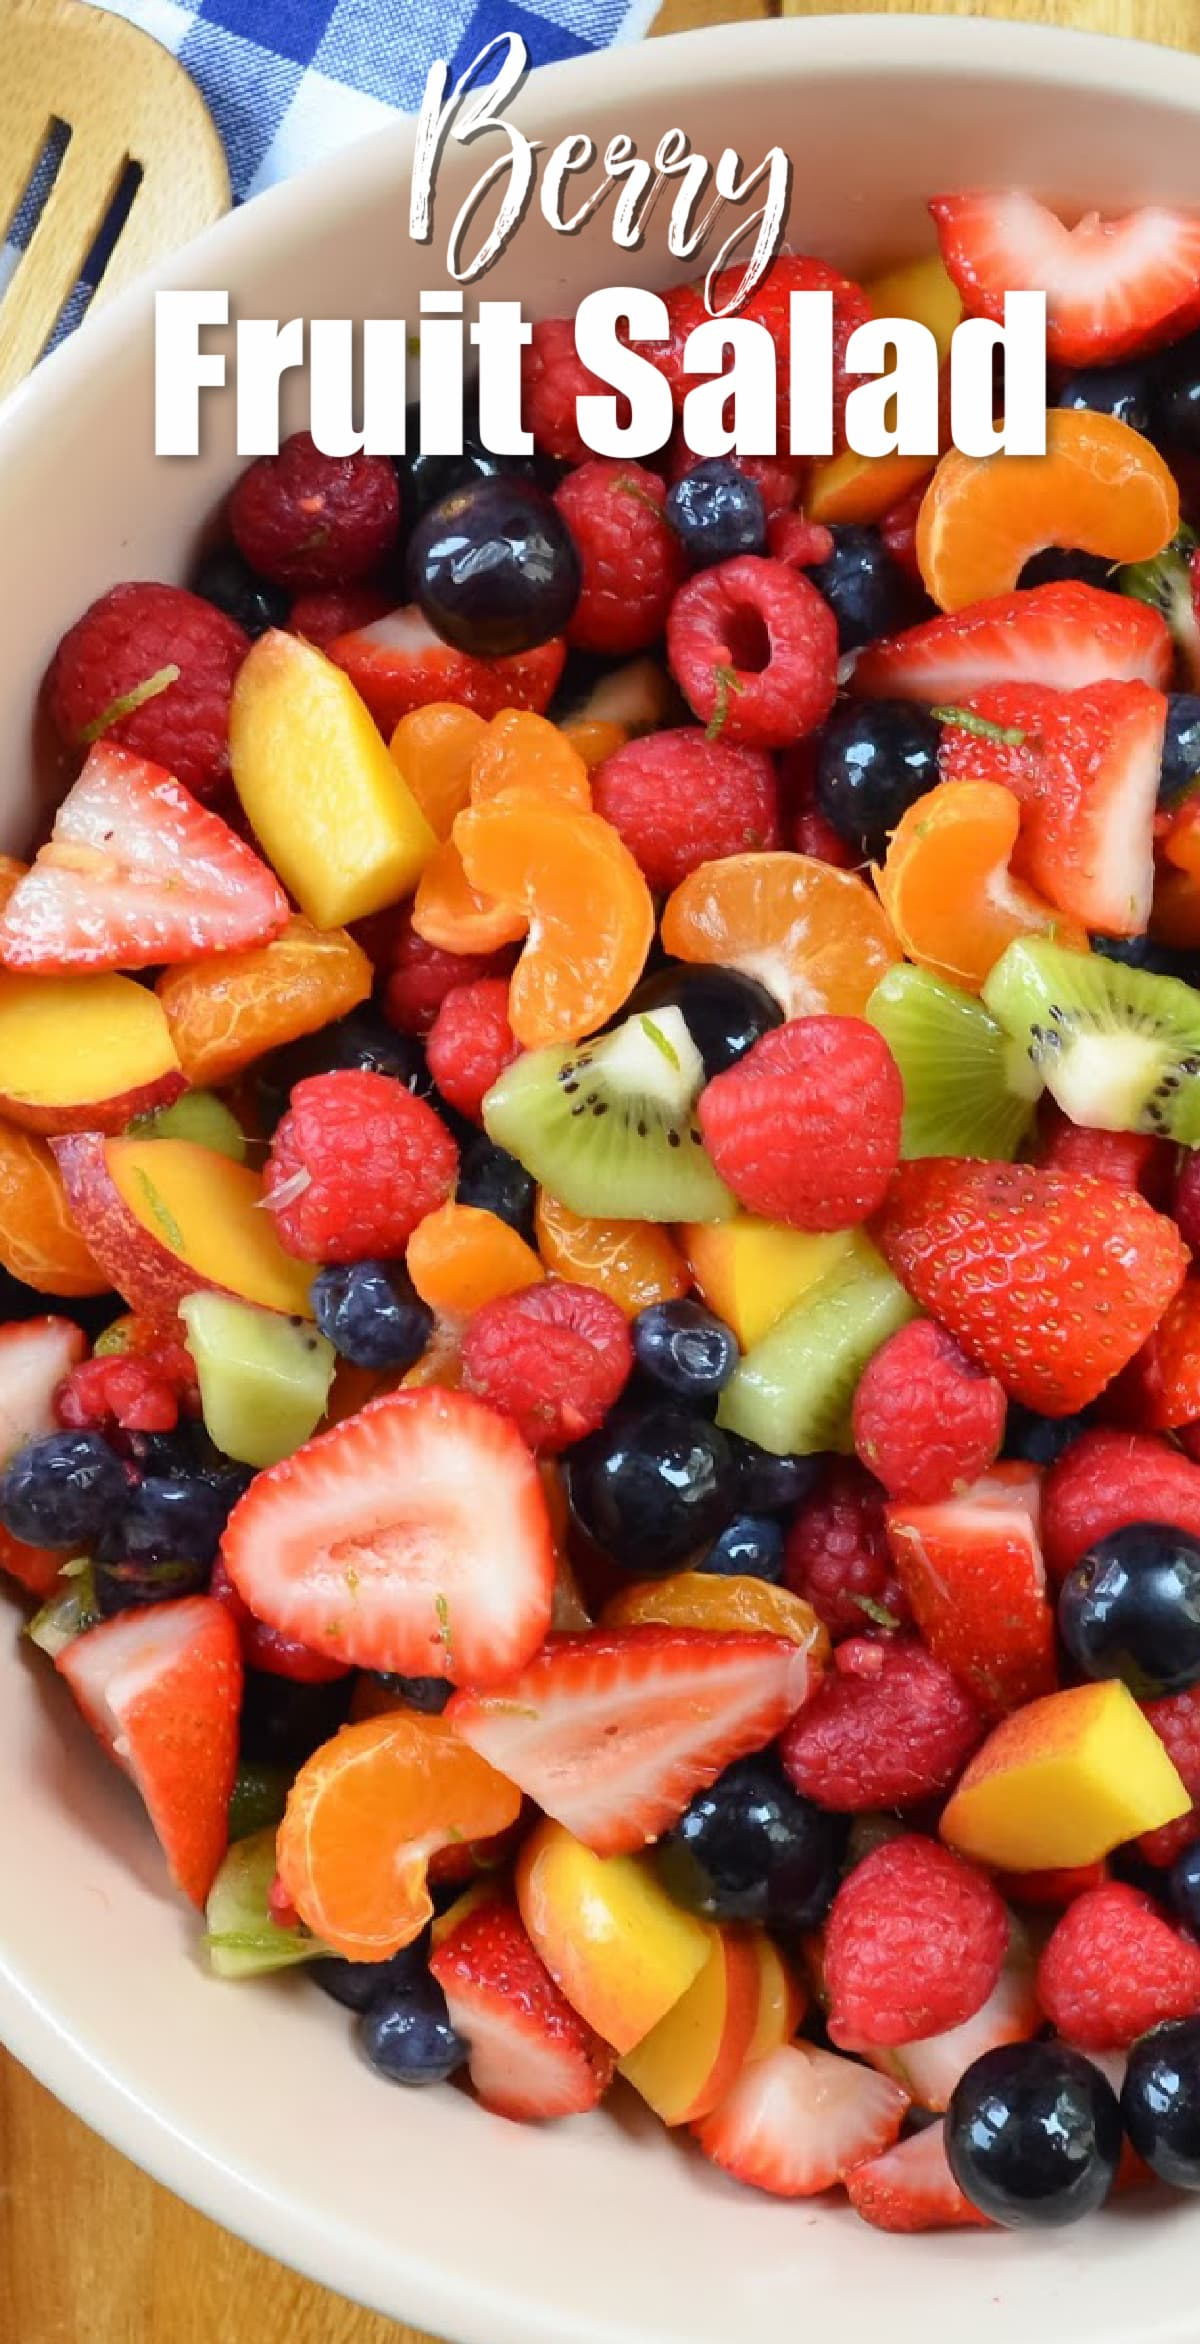 A down shot of Summer Berry Fruit Salad with Honey Lime Glaze with white text over the top Berry Fruit Salad.